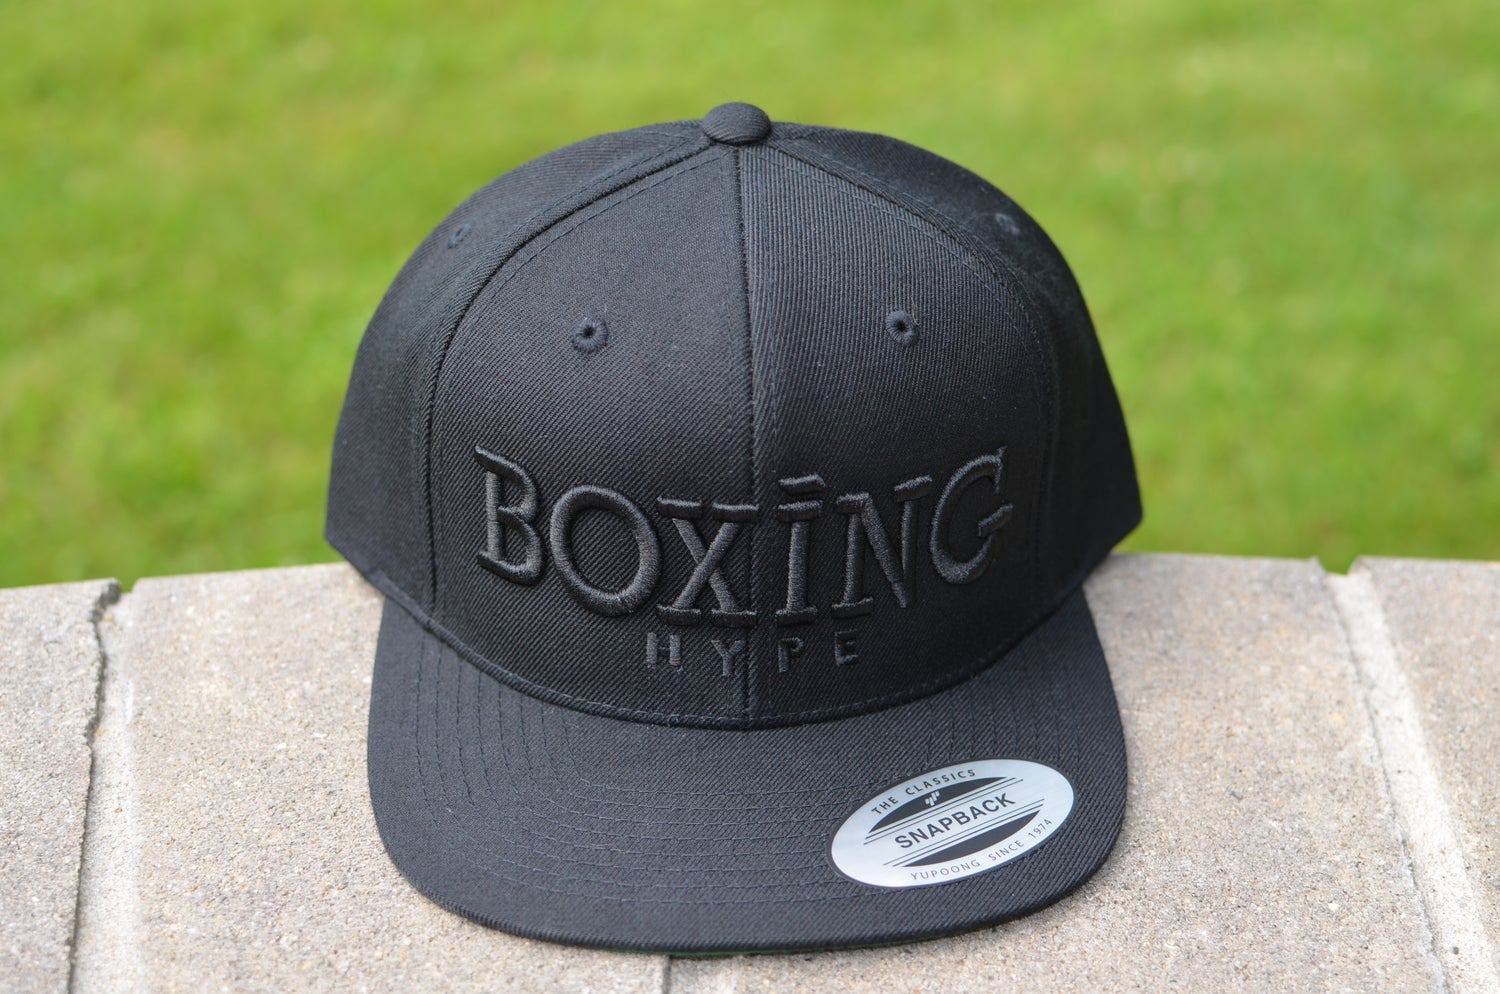 Image of Black on Black BoxingHype Snapbacks